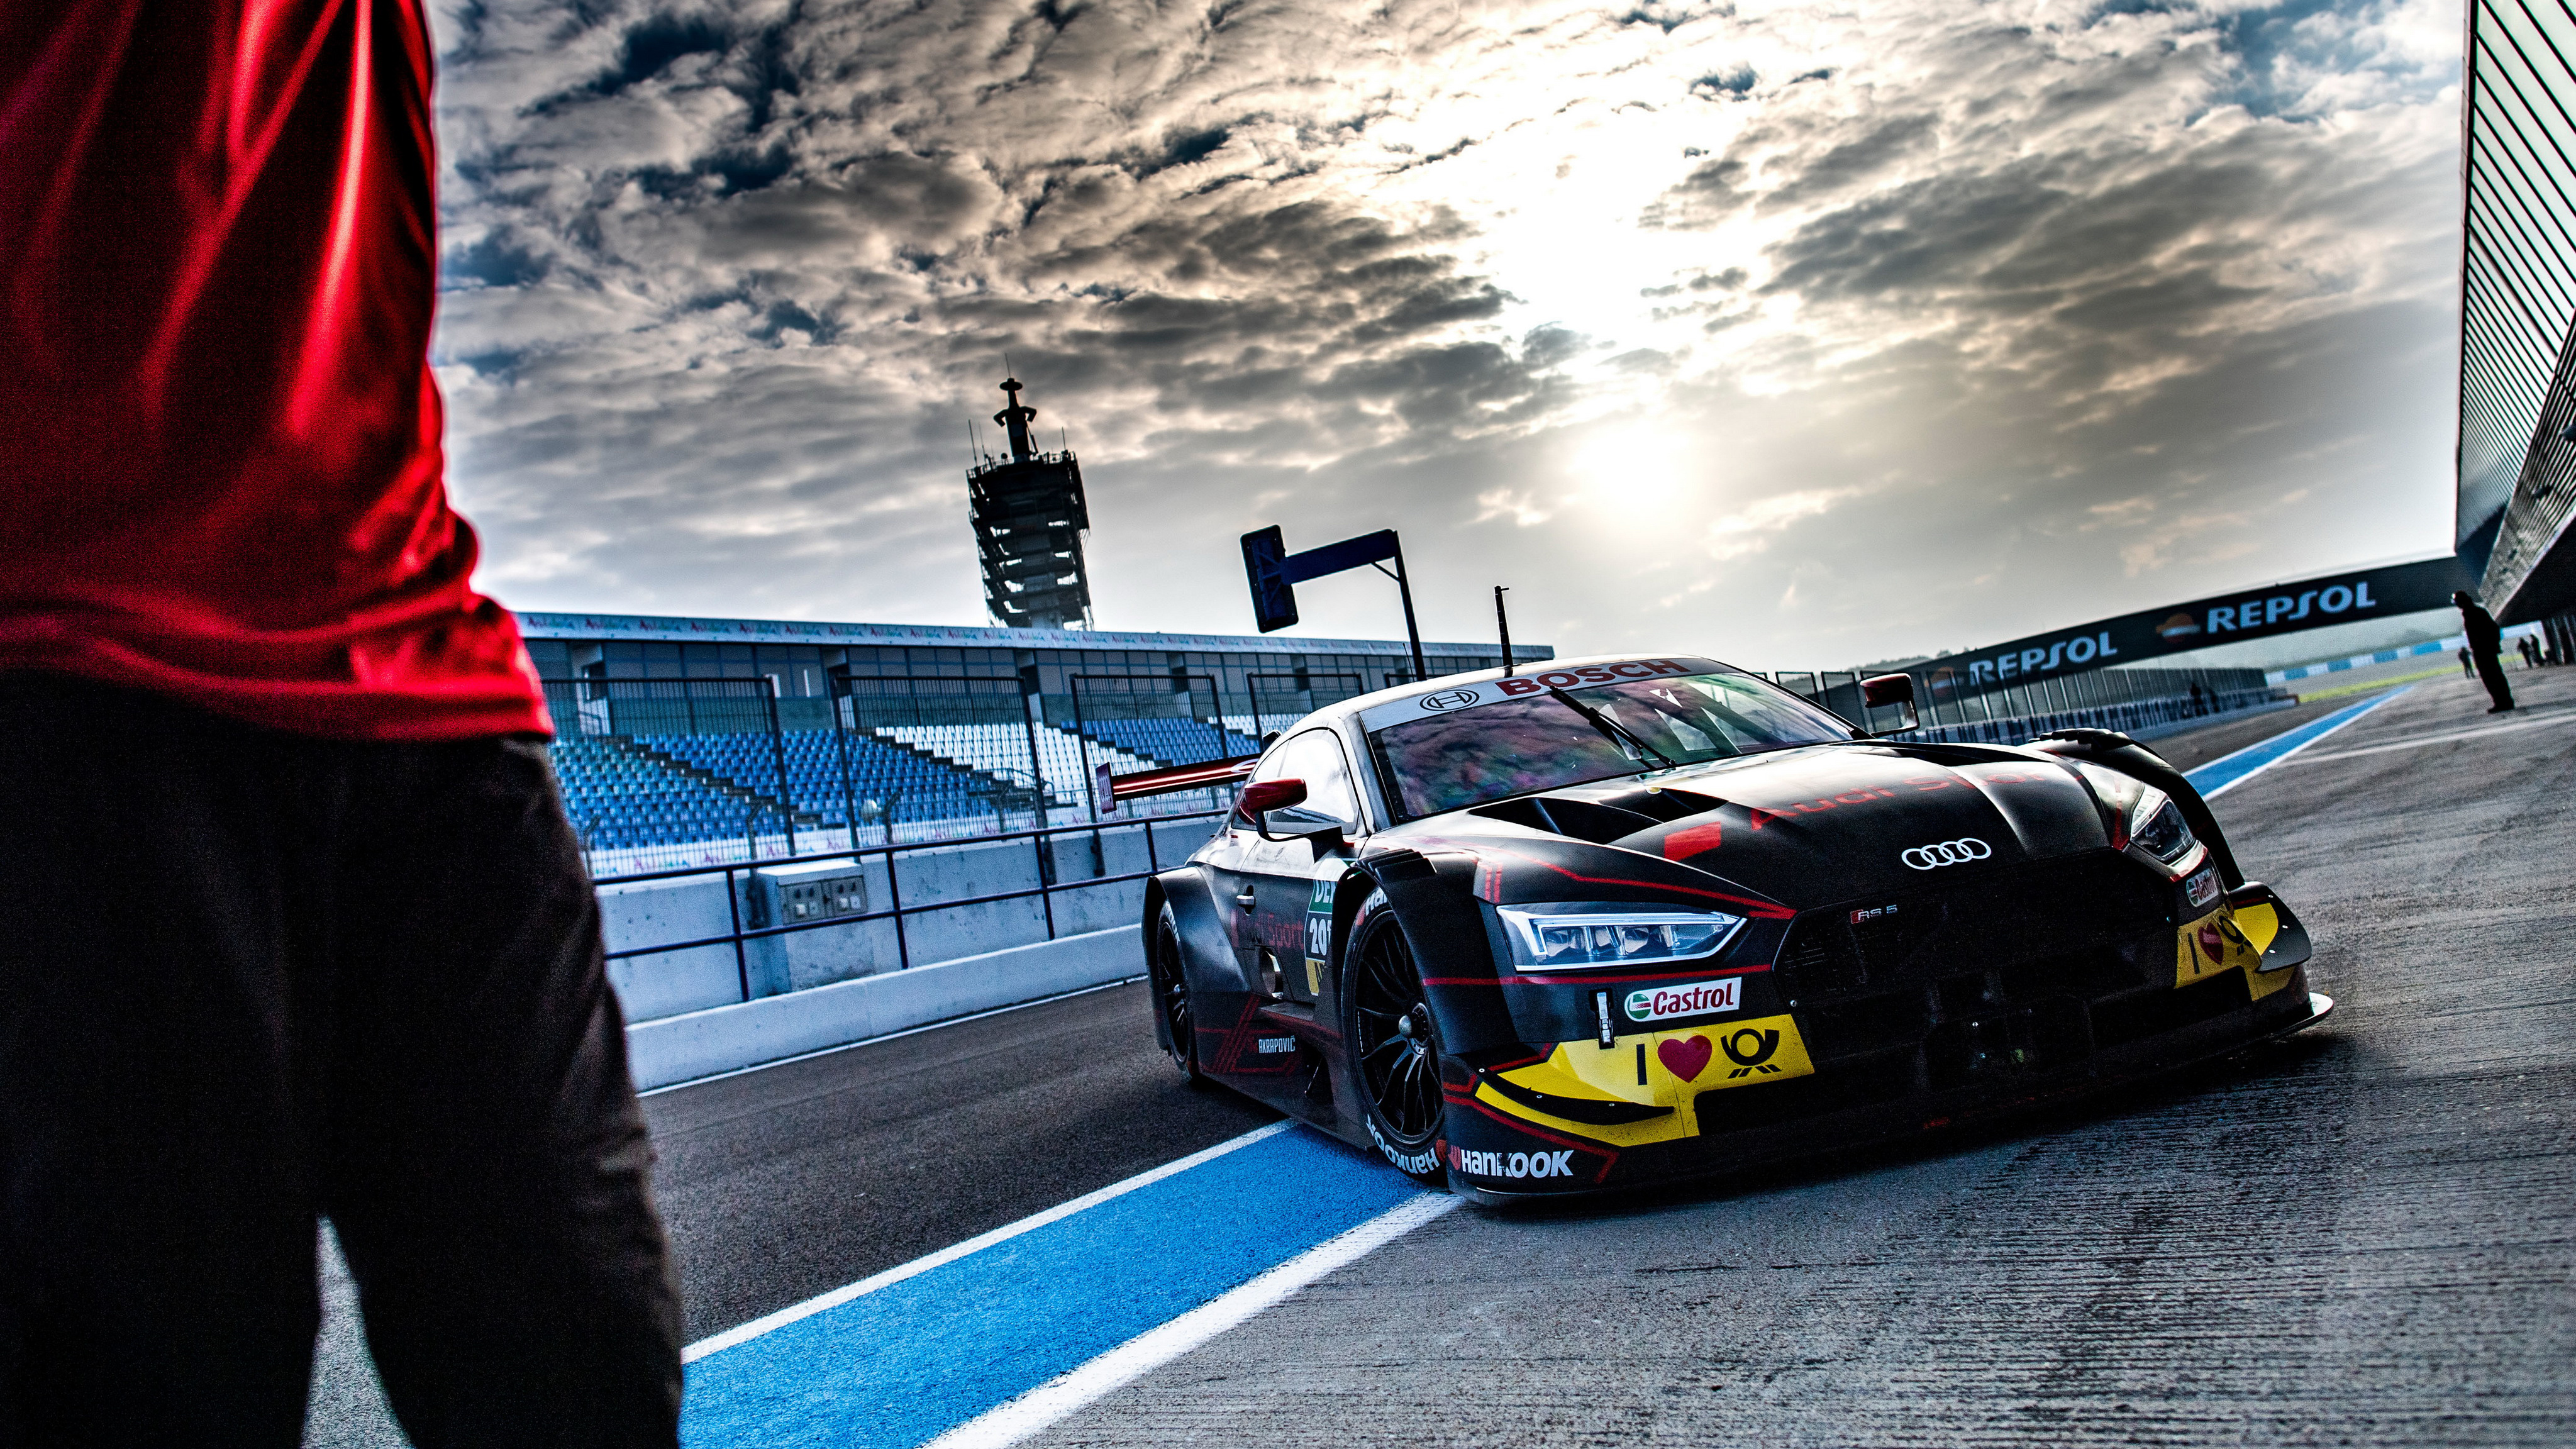 Audi RS 5 Coupe DTM 2019 4K Wallpaper | HD Car Wallpapers | ID #11802